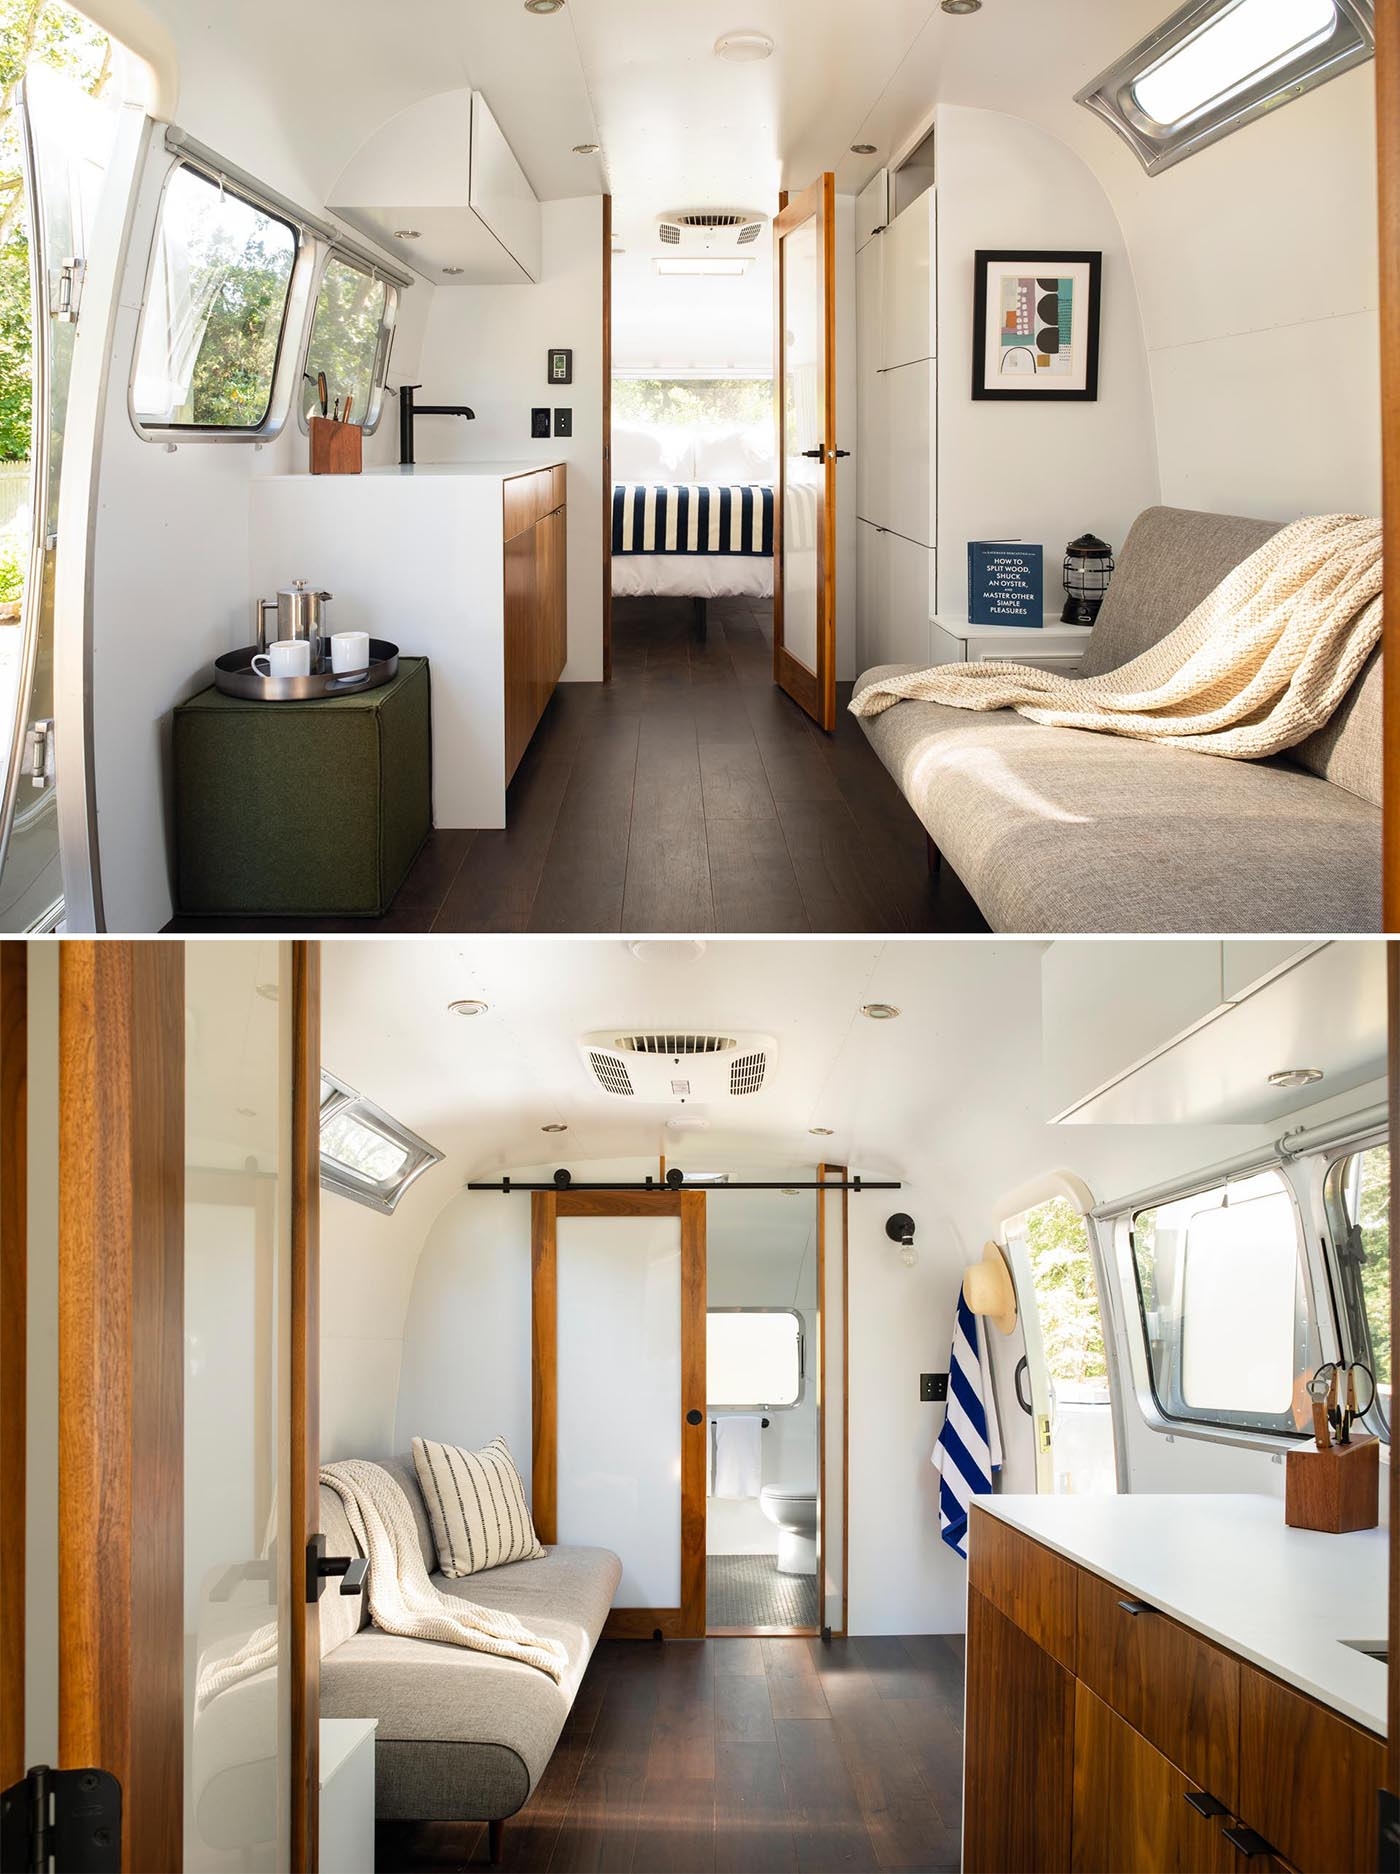 A remodeled Airstream trailer with a modern interior that includes a living room, kitchenette, bathroom, and bedroom.